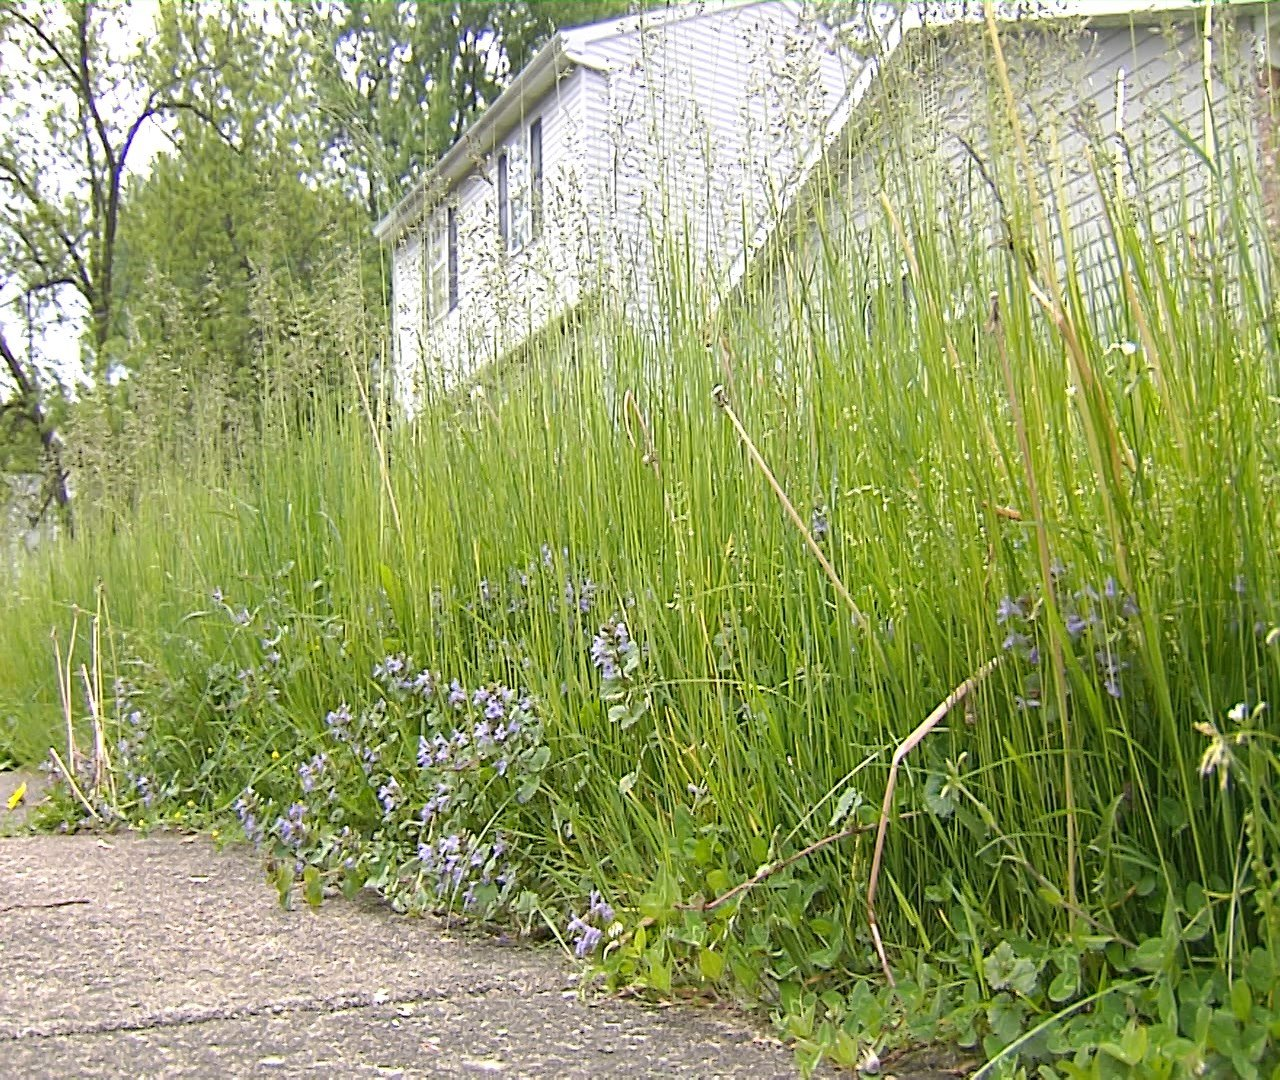 Overgrown Grass Frustrates Erie Neighbors Erie News Now Wicu And Wsee In Erie Pa